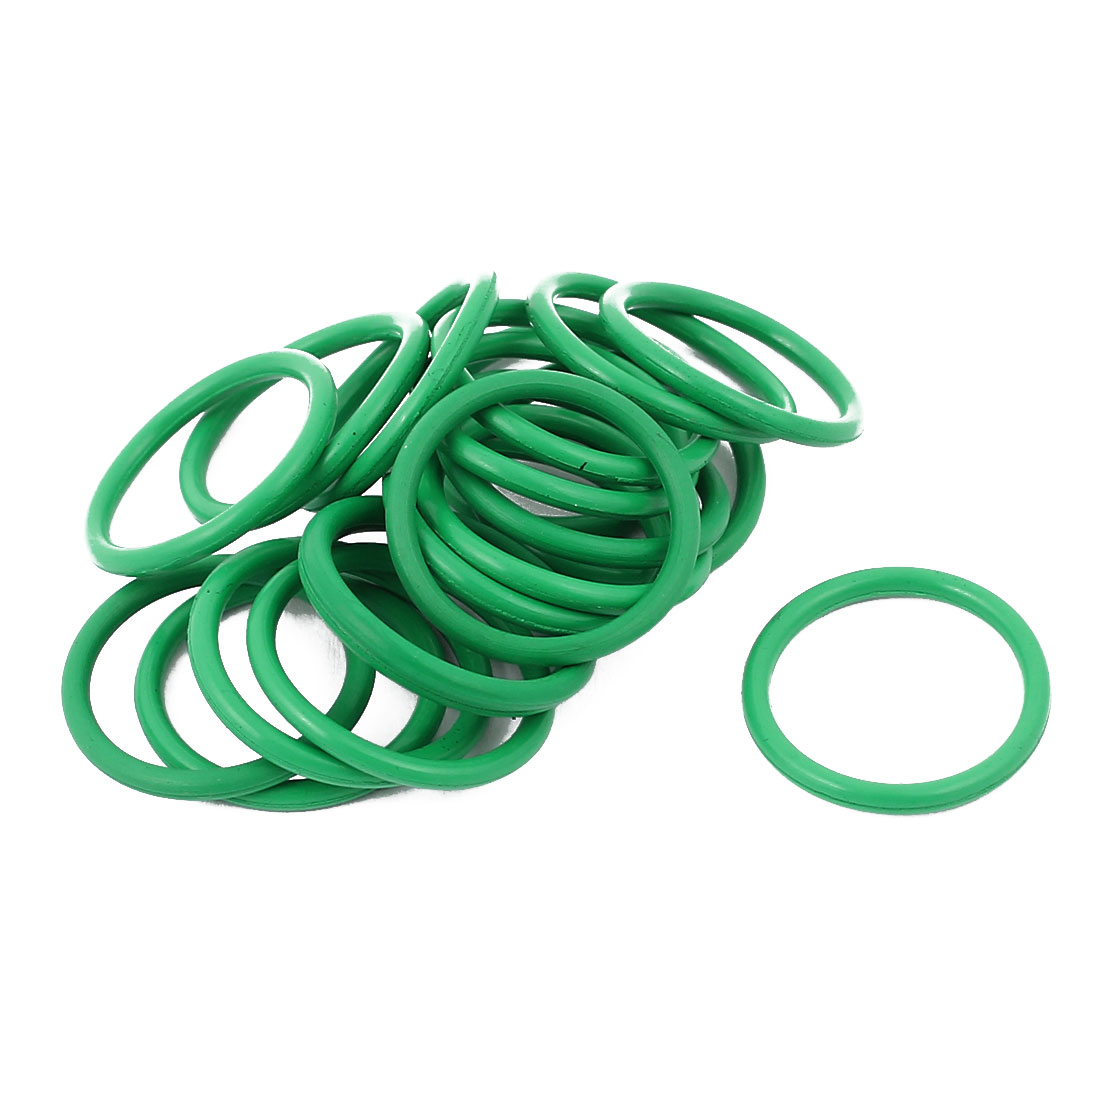 20pcs 1.5mm Thick Heat Resistant  Green O-Ring Rubber Sealing Ring 16mm OD